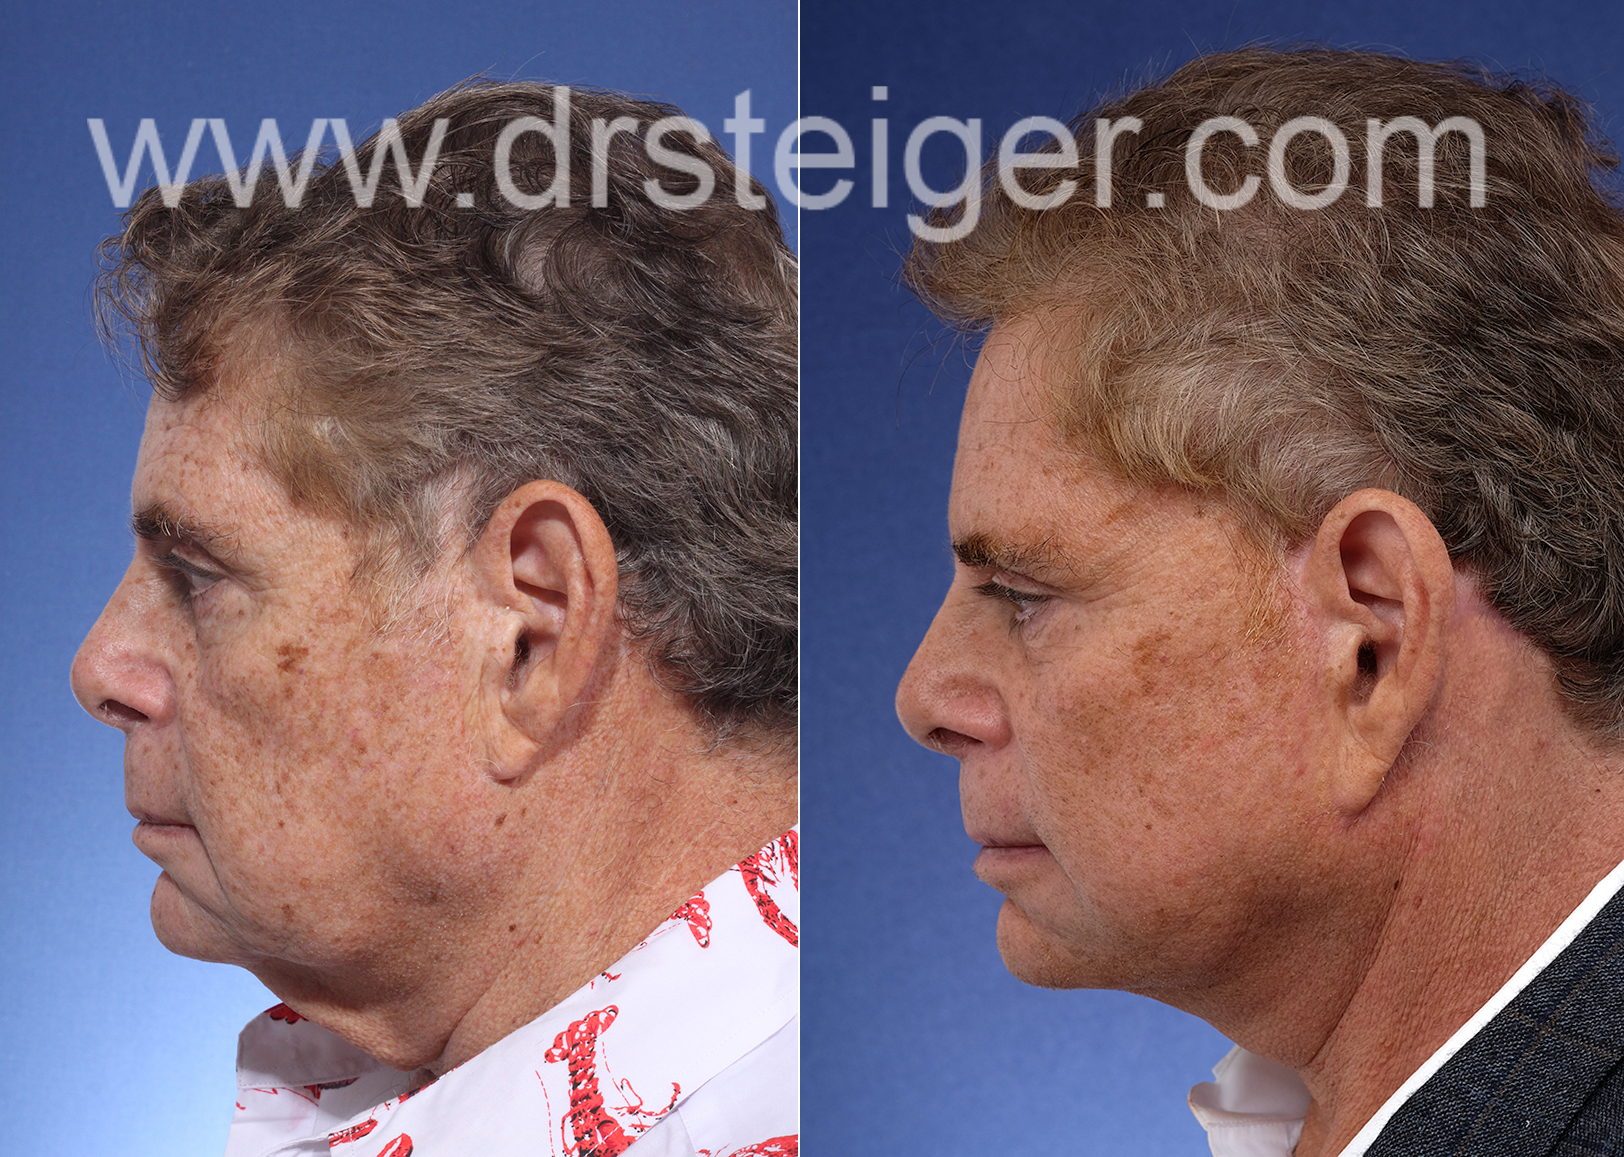 facelift and necklift in a man